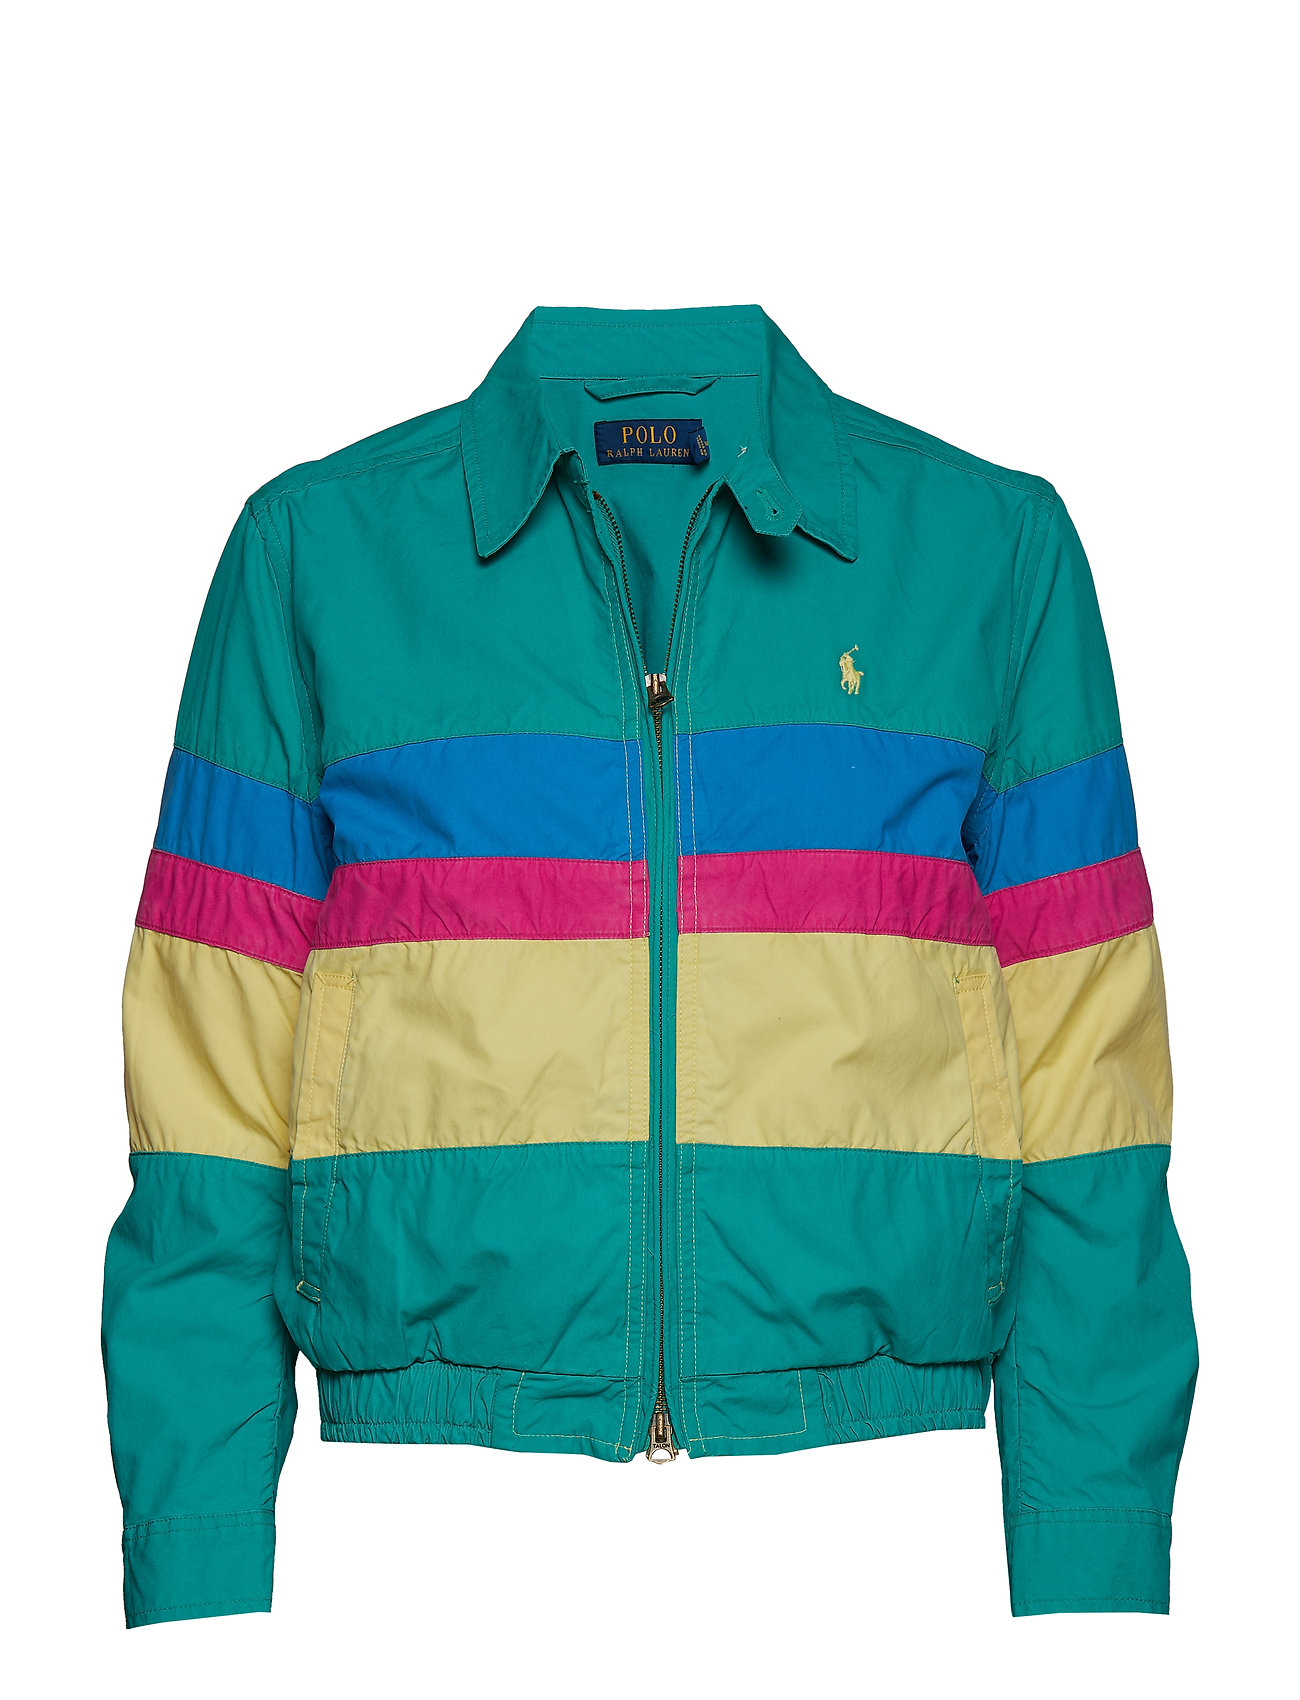 Polo Ralph Lauren Poplin Windbreaker Jacket